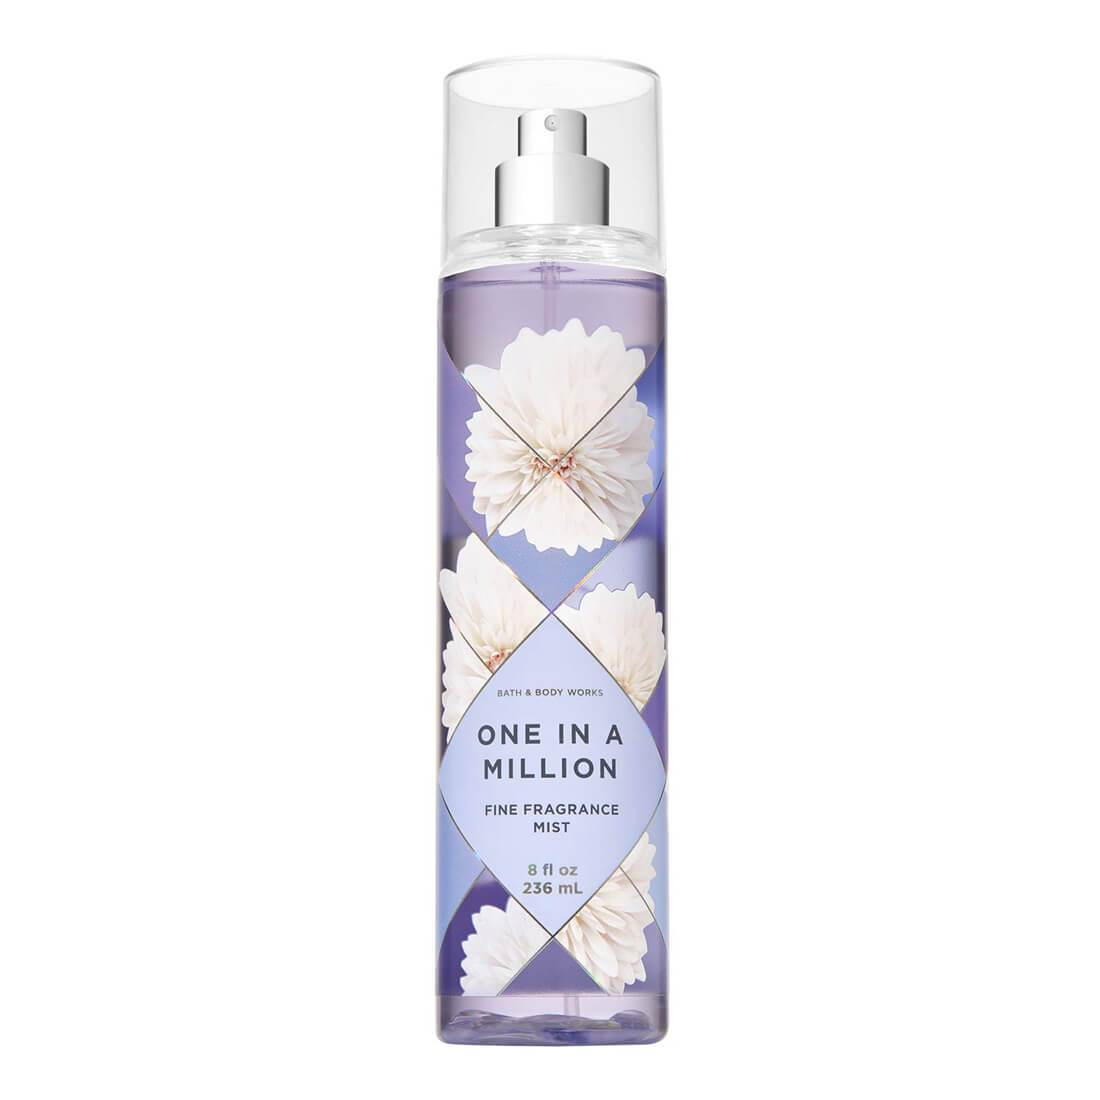 Bath & Body Works One In A Million Signature Collection Fragrance Mist 236ml